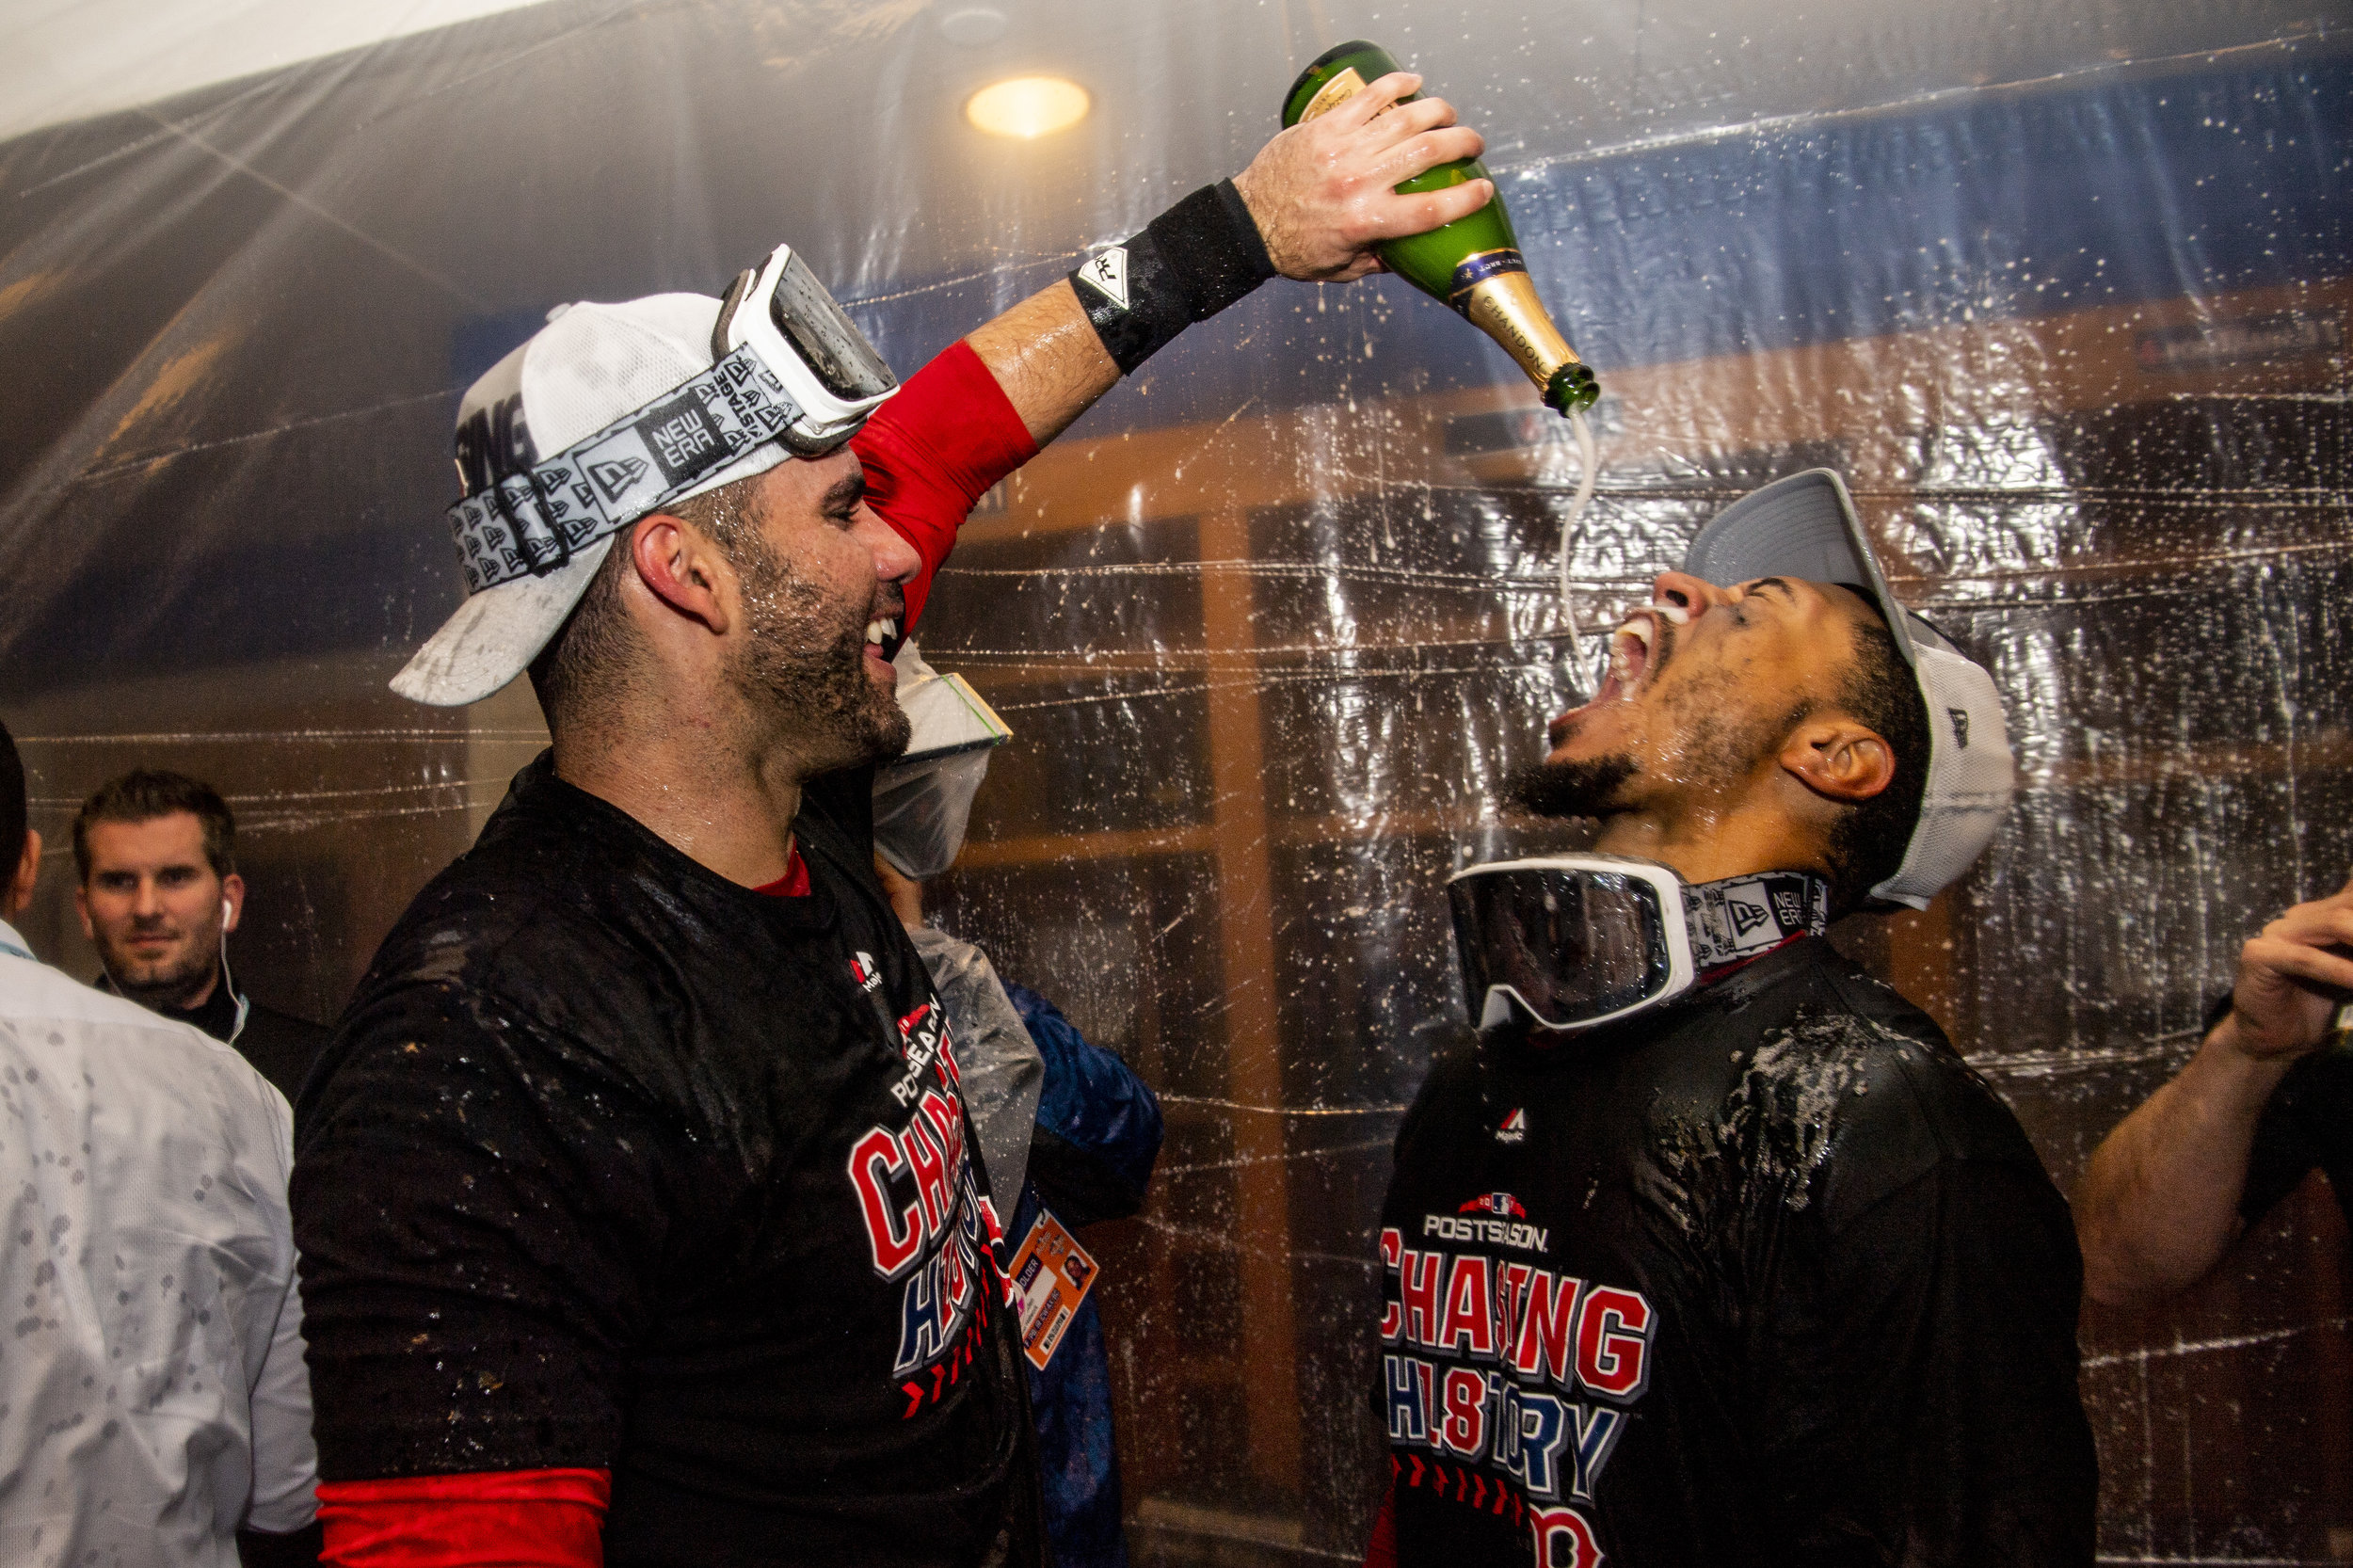 October 9, 2018, New York, NY: Boston Red Sox outfielder J.D. Martinez pours champagne on Boston Red Sox outfielder Mookie Betts after the Boston Red Sox defeated the New York Yankees in Game 4 of the ALDS to win the series at Yankee Stadium in New York, New York on Tuesday, October 9, 2018. (Photo by Matthew Thomas/Boston Red Sox)